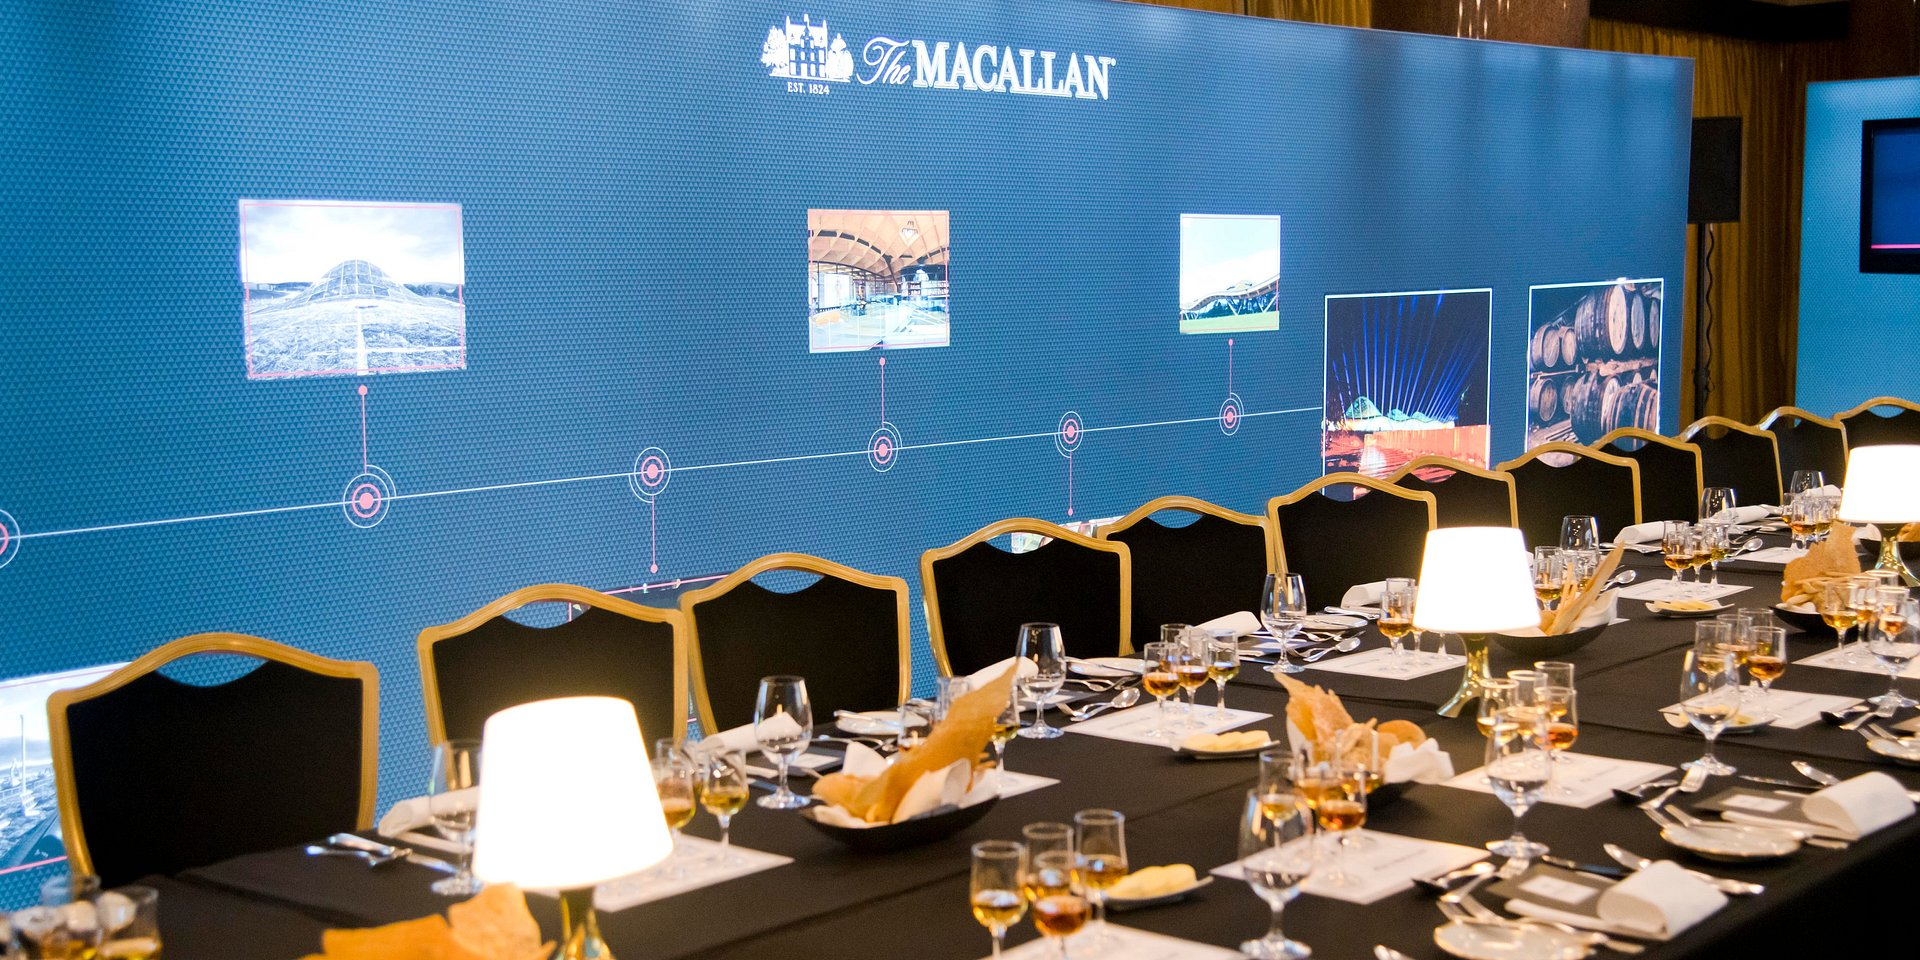 THE MACALLAN LANÇA NOVO PACKAGING E REDEFINE PORTEFÓLIO GLOBAL